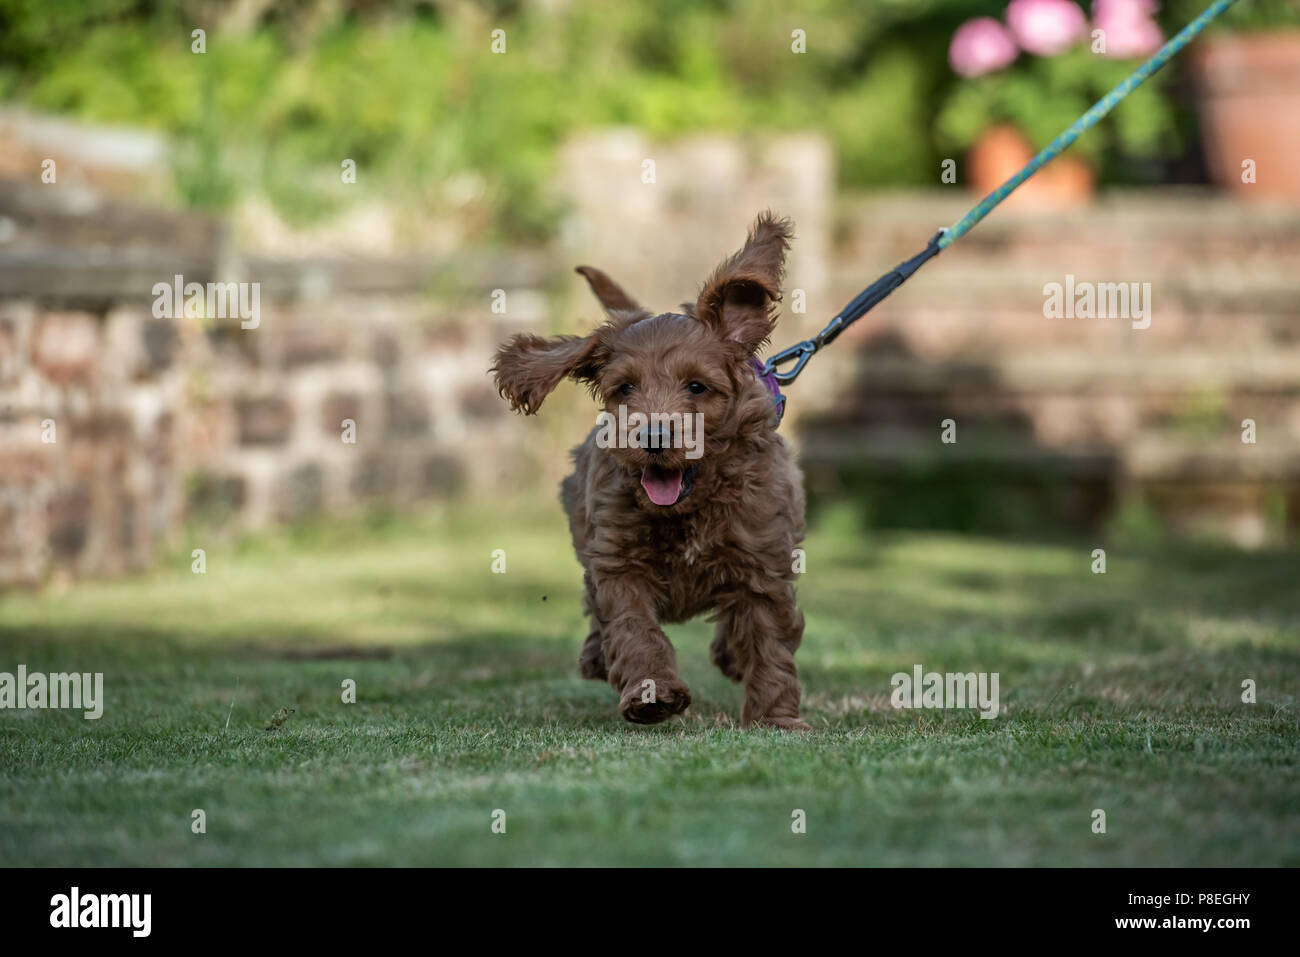 A young red Cockapoo puppy being playful in its owners garden in its owners garden - Stock Image